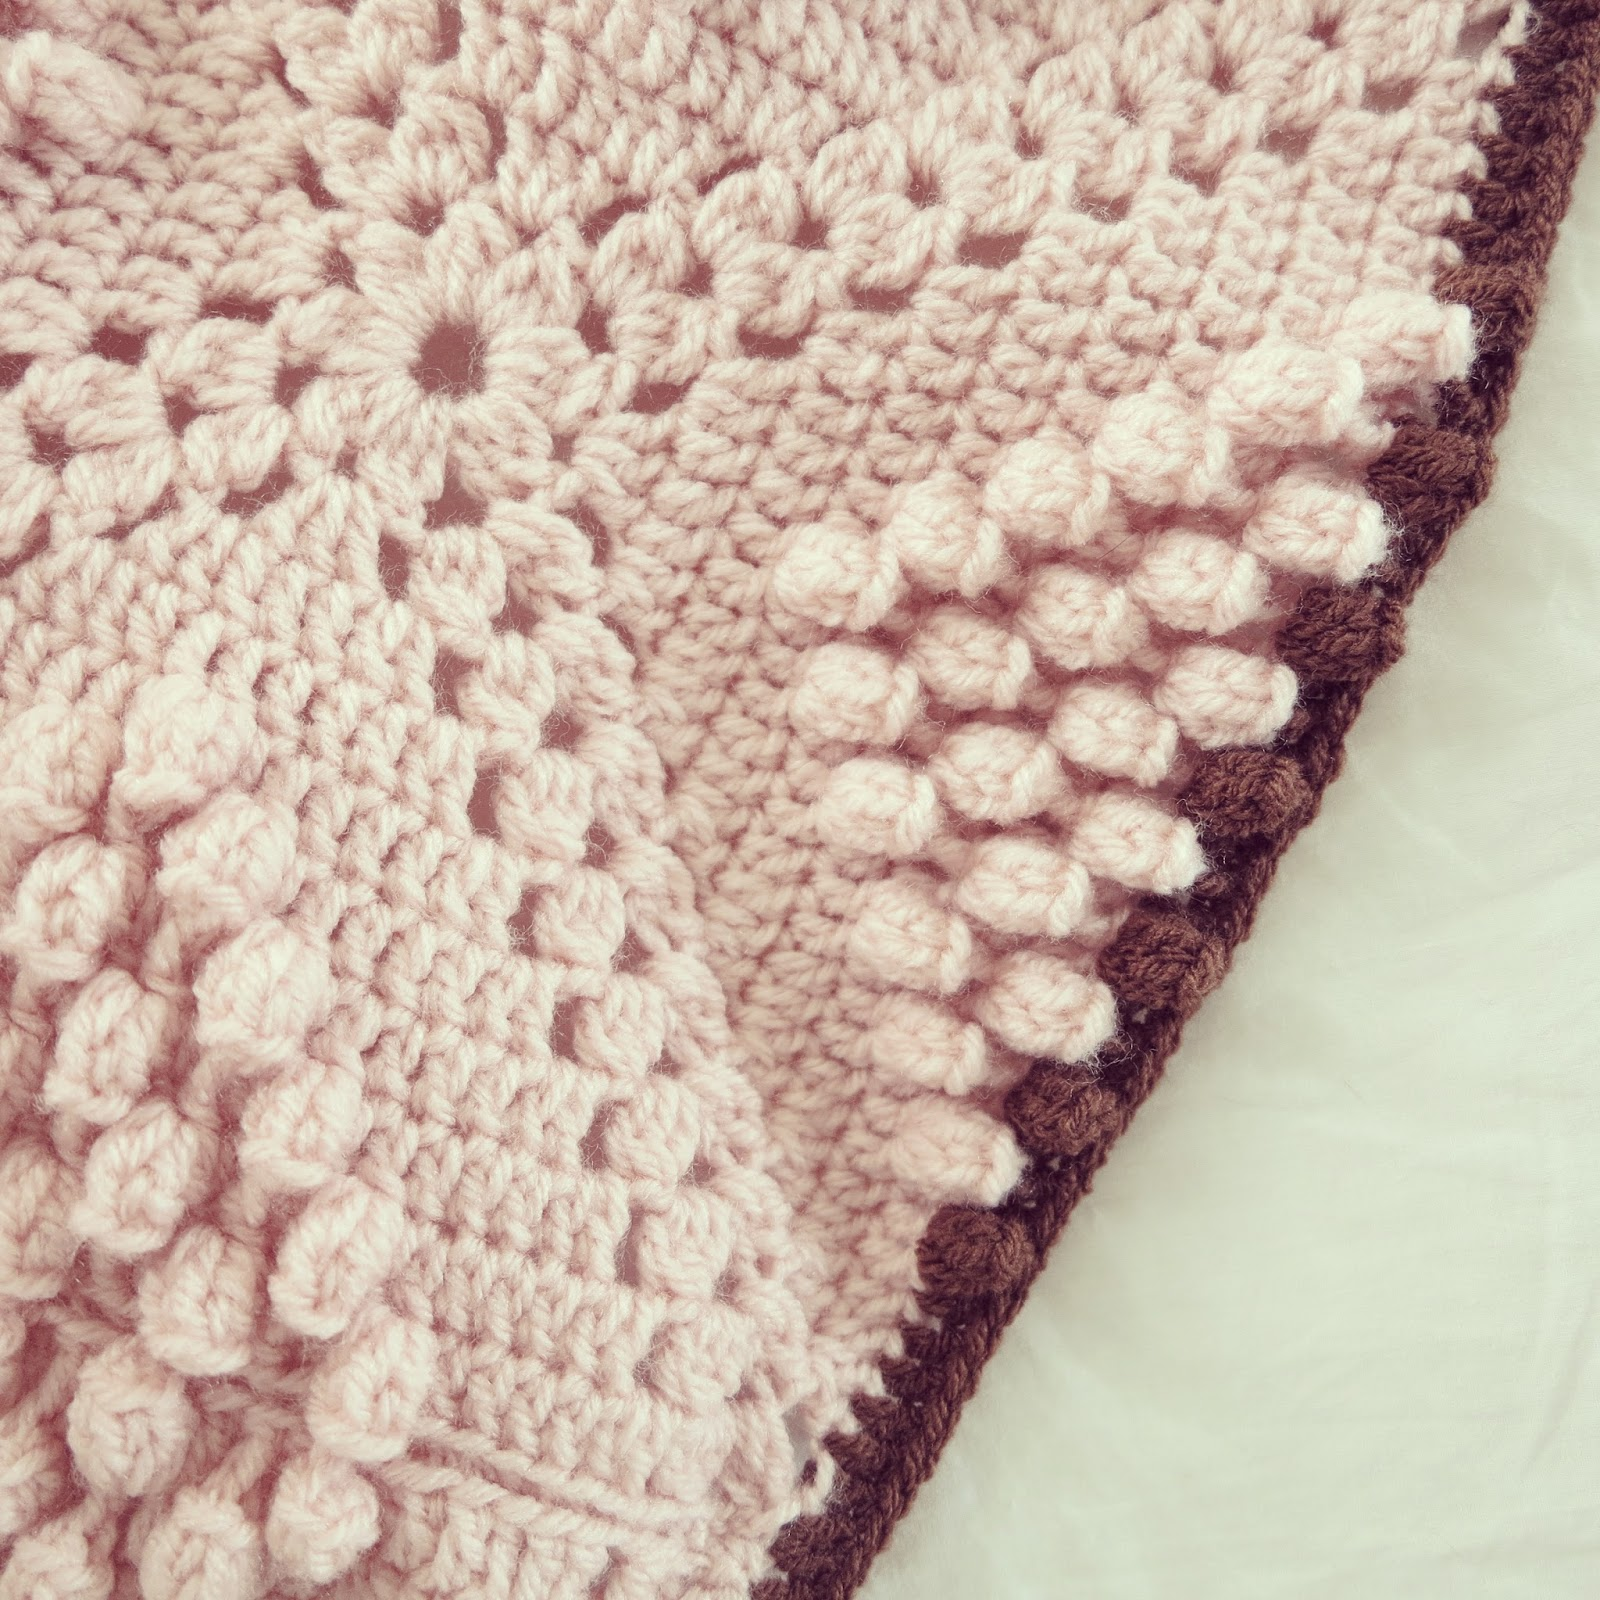 Crochet Stitches Crochet Popcorn Stitch : Using a contrasting colour I simply single crochetedone row along the ...